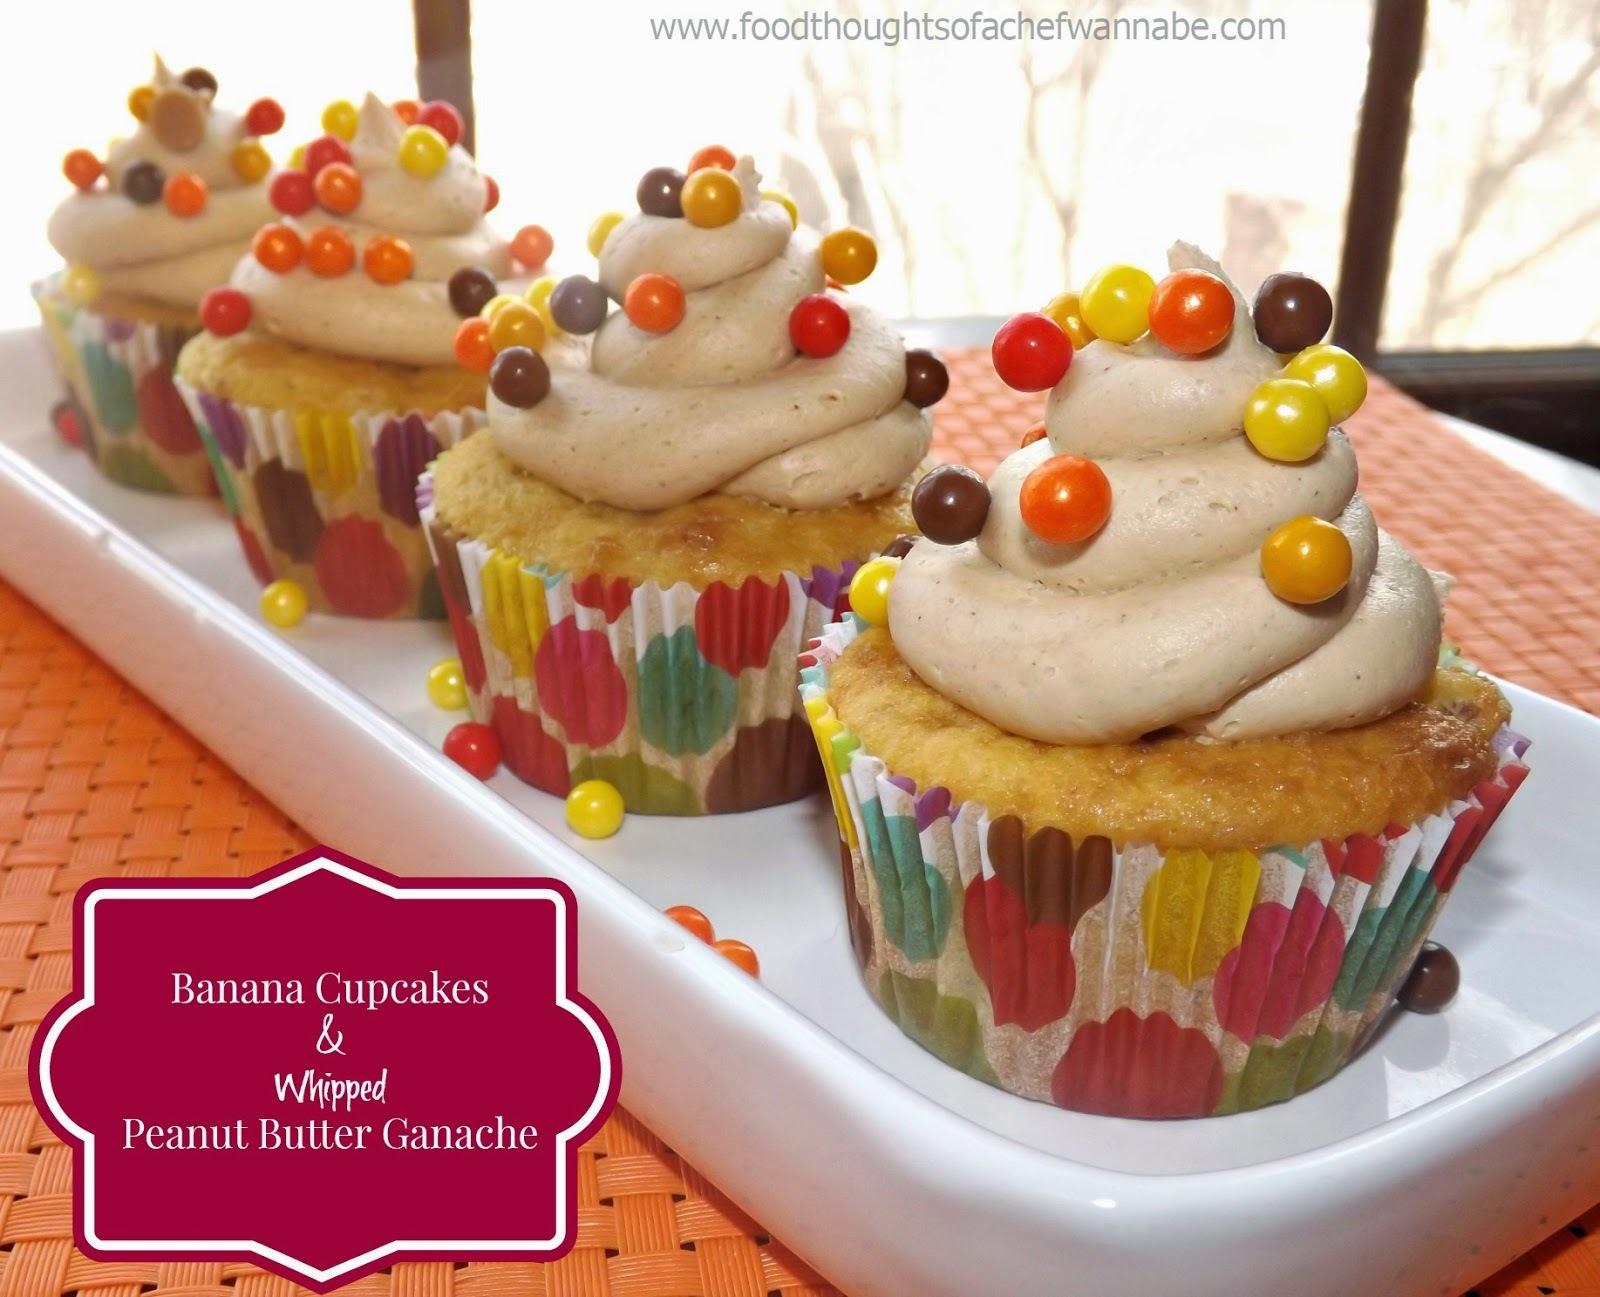 Banana Cupcakes with Whipped Peanut Butter Ganache